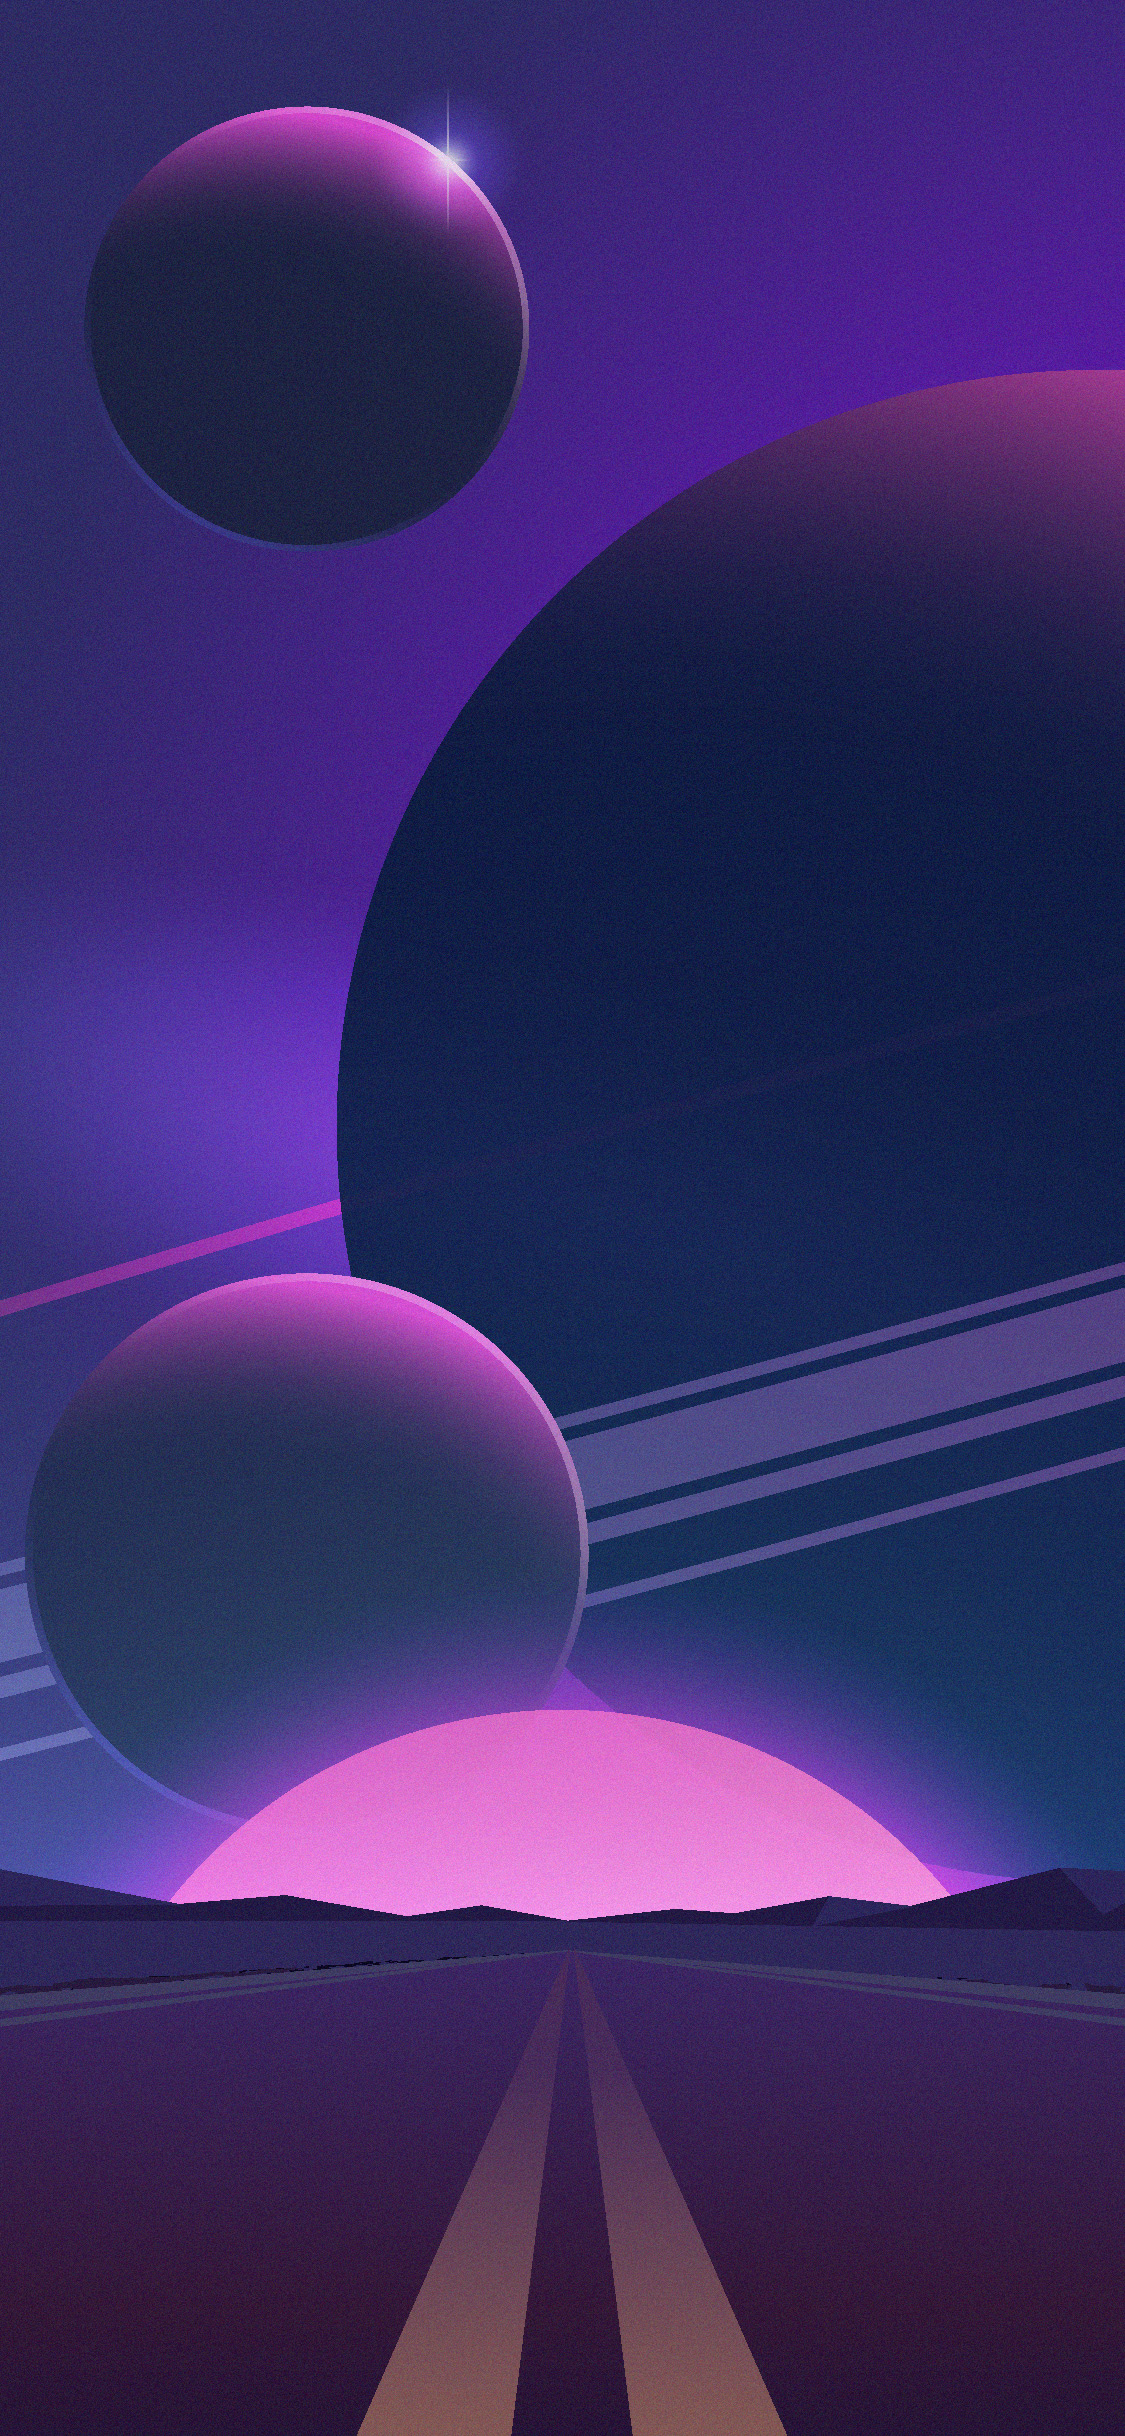 Wallpapers of purple planets